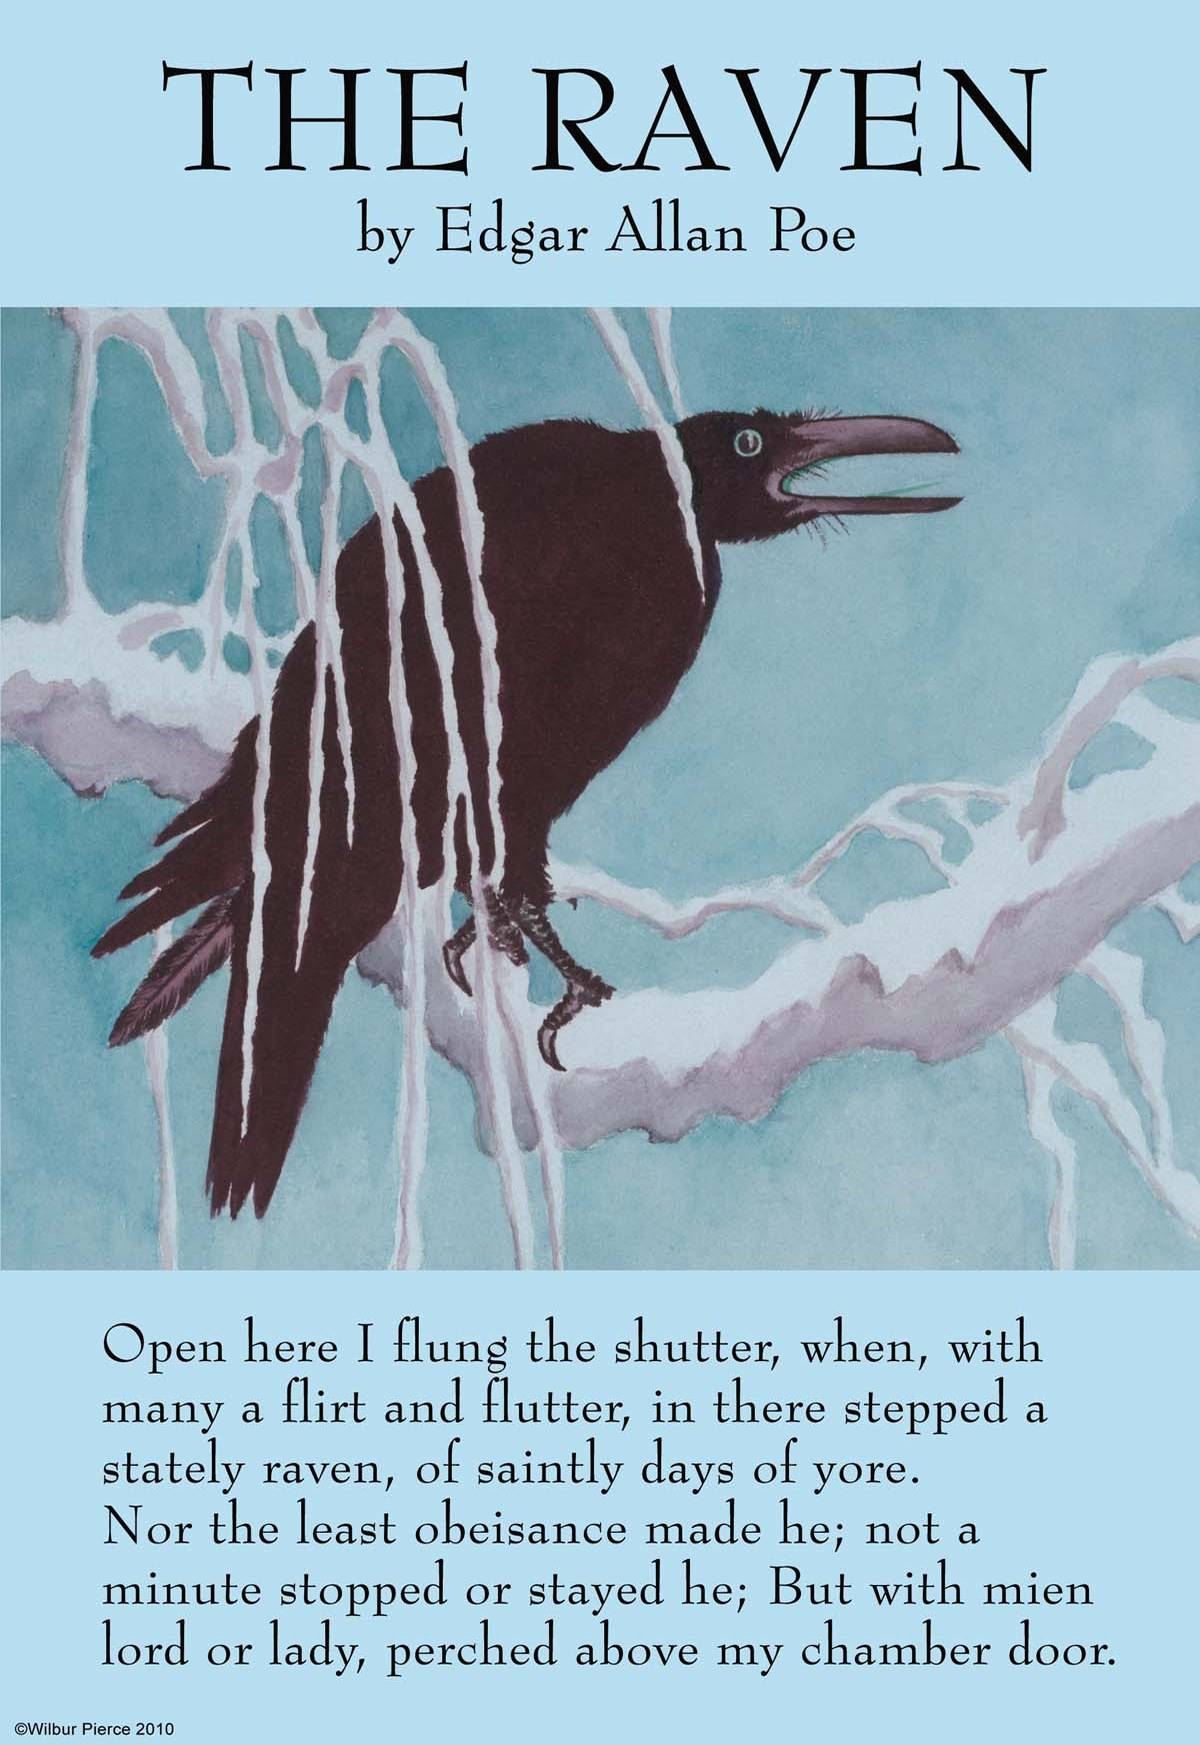 an analysis of the raven by Psychoanalysis on the poem the raven by edgar allen poe the raven can be looked at from many different perspectives, including what the raven in the poem symbolizes to poe, what made this poem deeply accredited for this author, or also what made poe decide to write this poem.